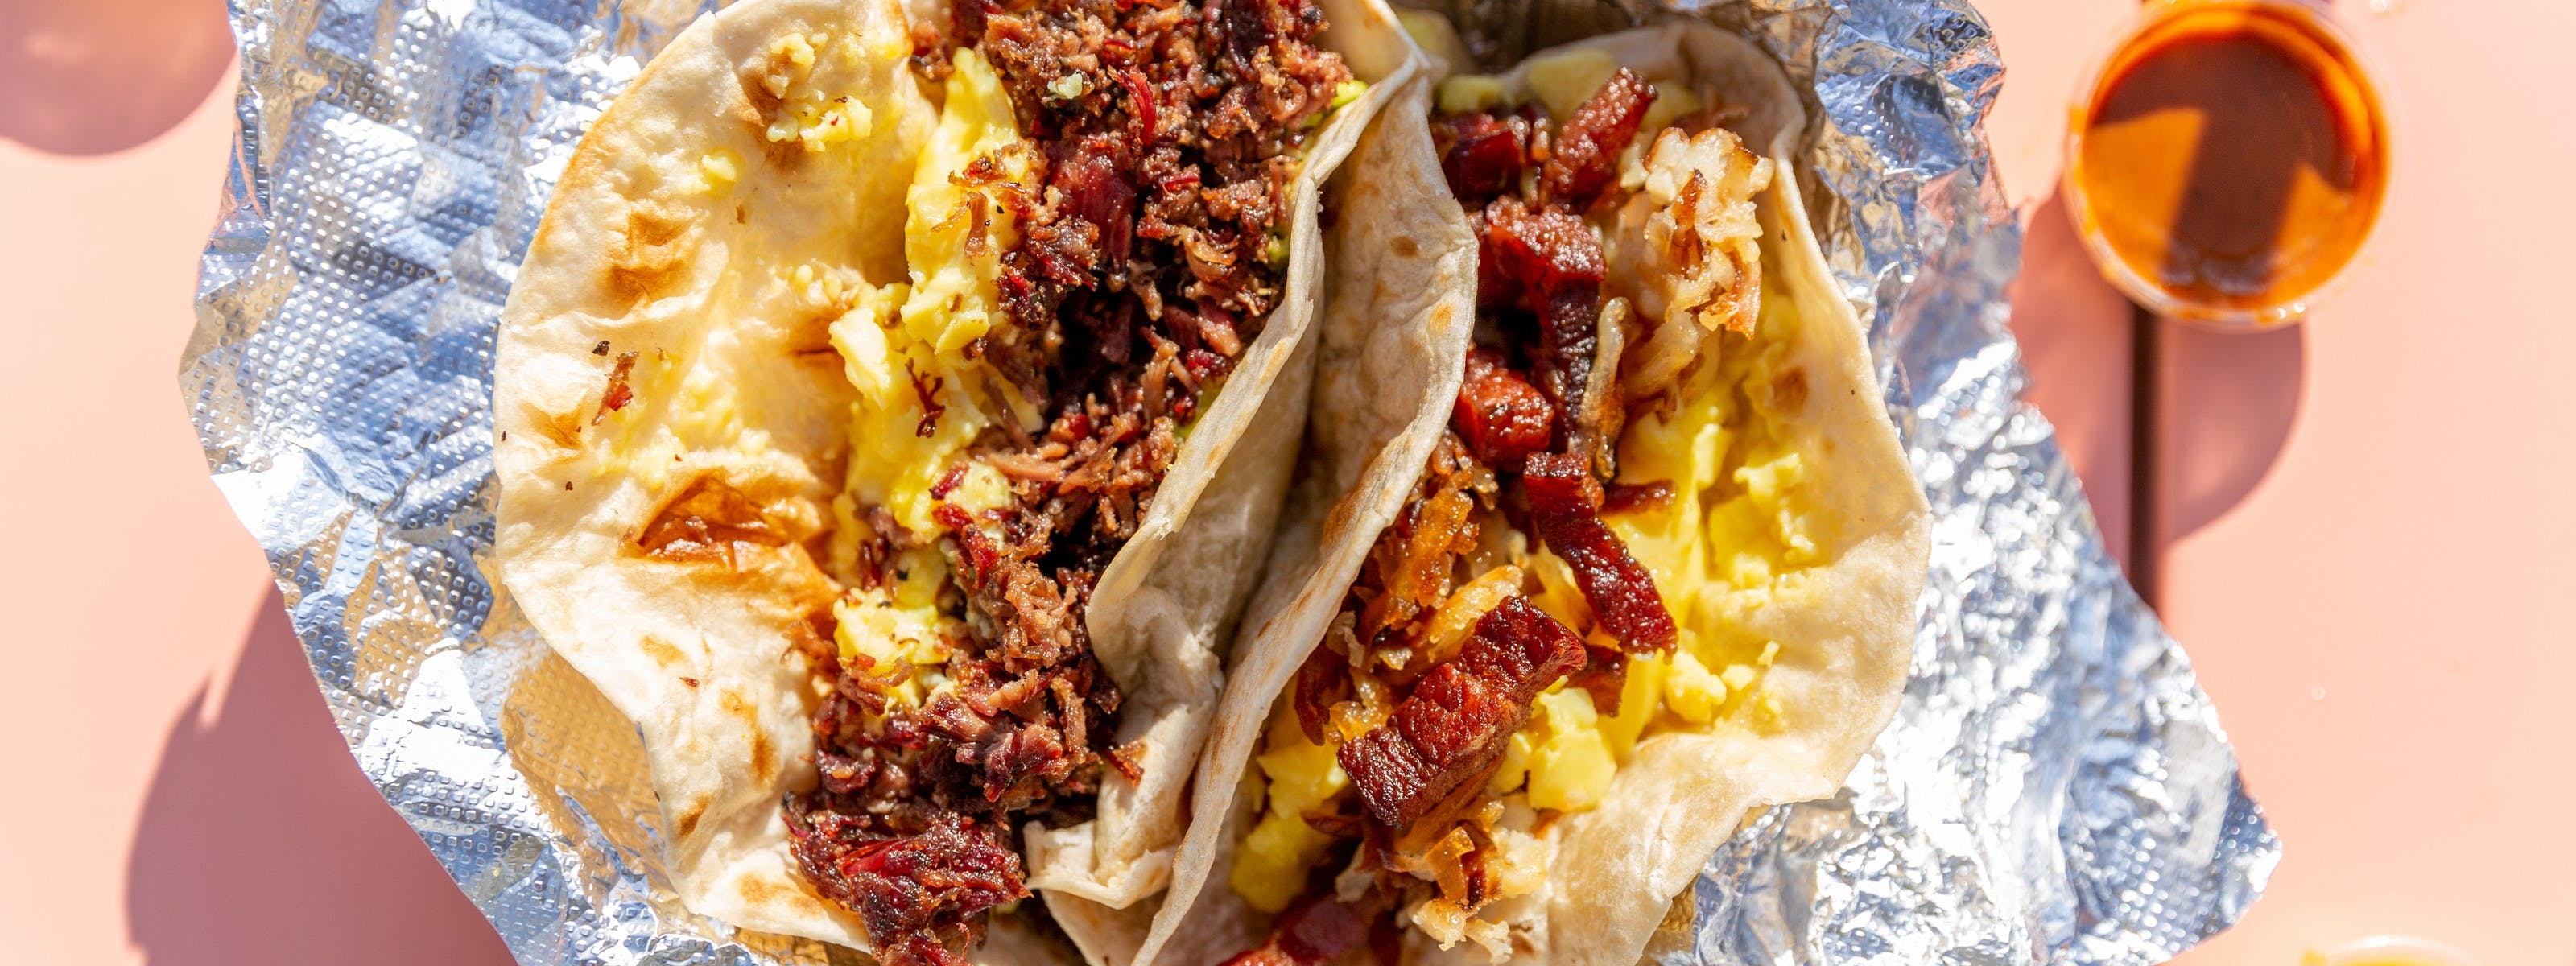 The Best Breakfast Tacos In Austin - Austin - The Infatuation